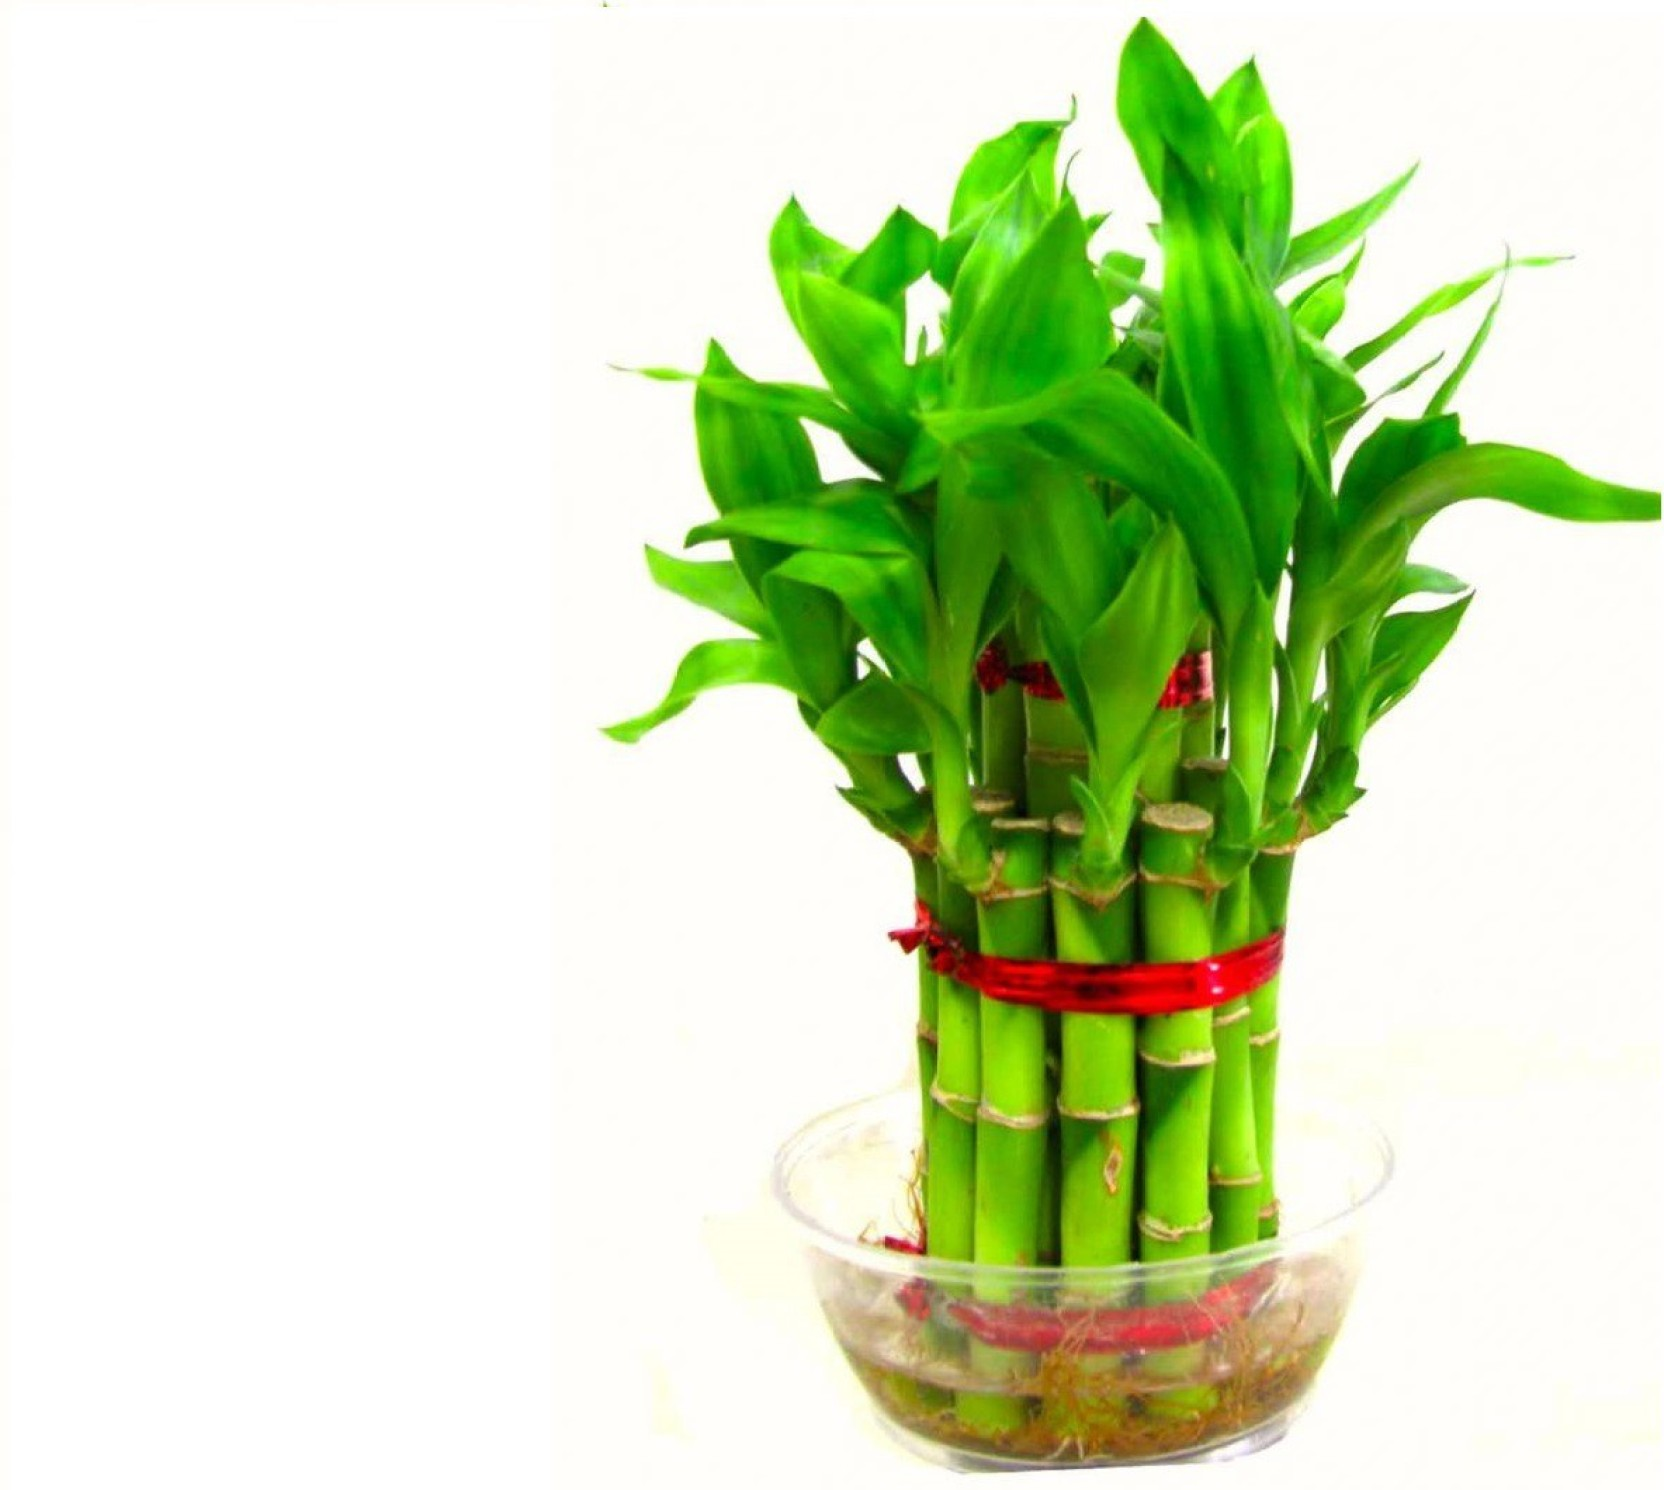 Green plant indoor 2 layer lucky bamboo plants seed price for Indoor green plants images